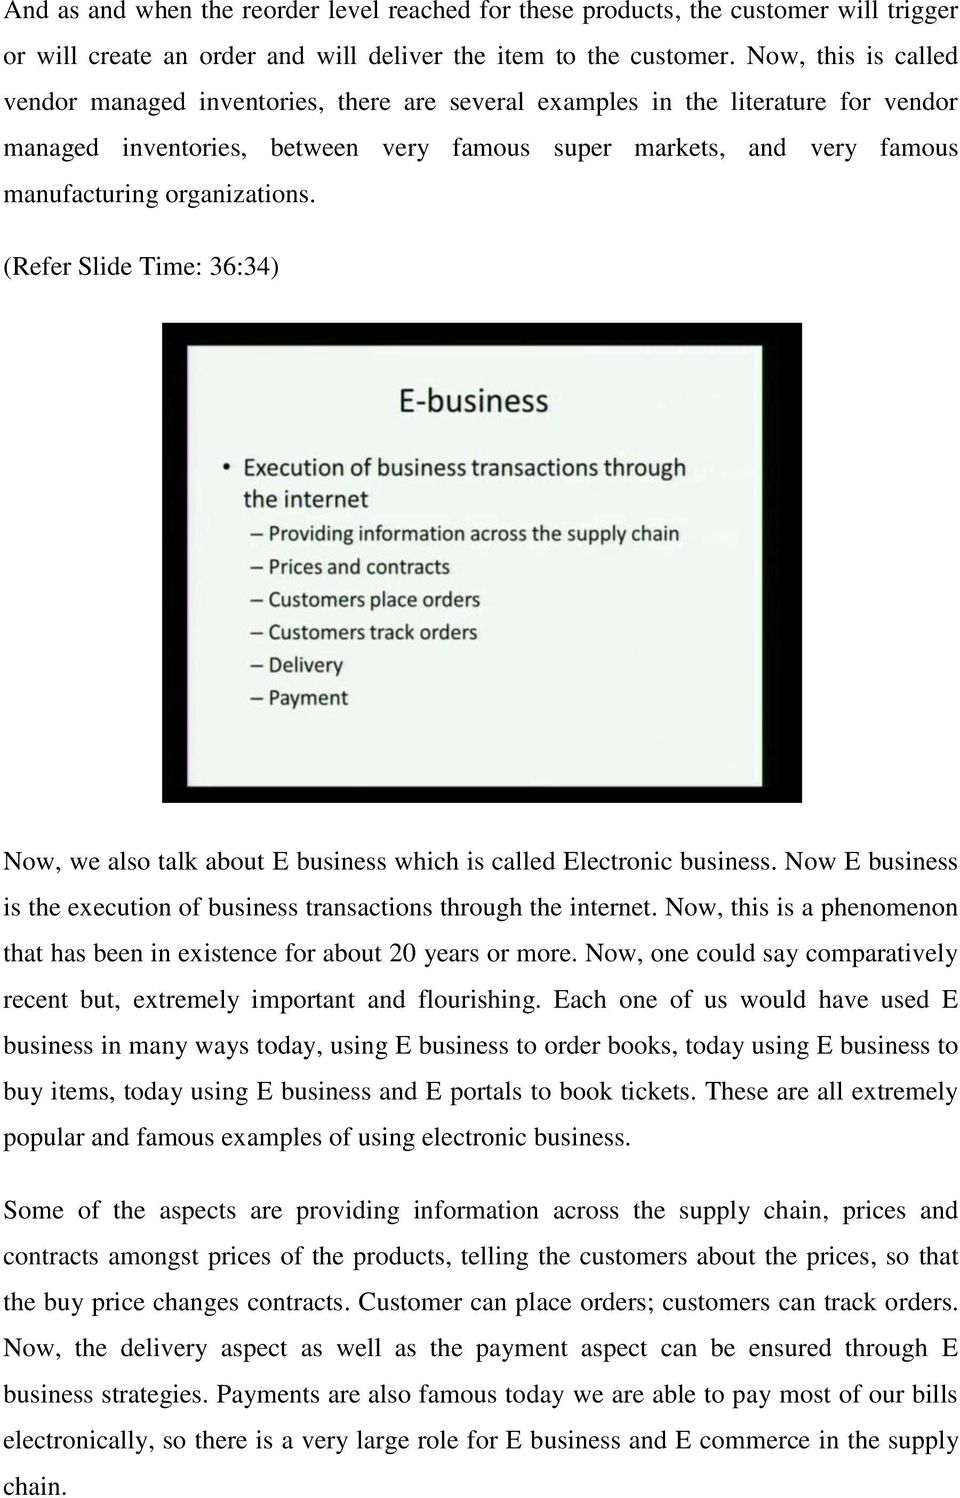 organizations. (Refer Slide Time: 36:34) Now, we also talk about E business which is called Electronic business. Now E business is the execution of business transactions through the internet.